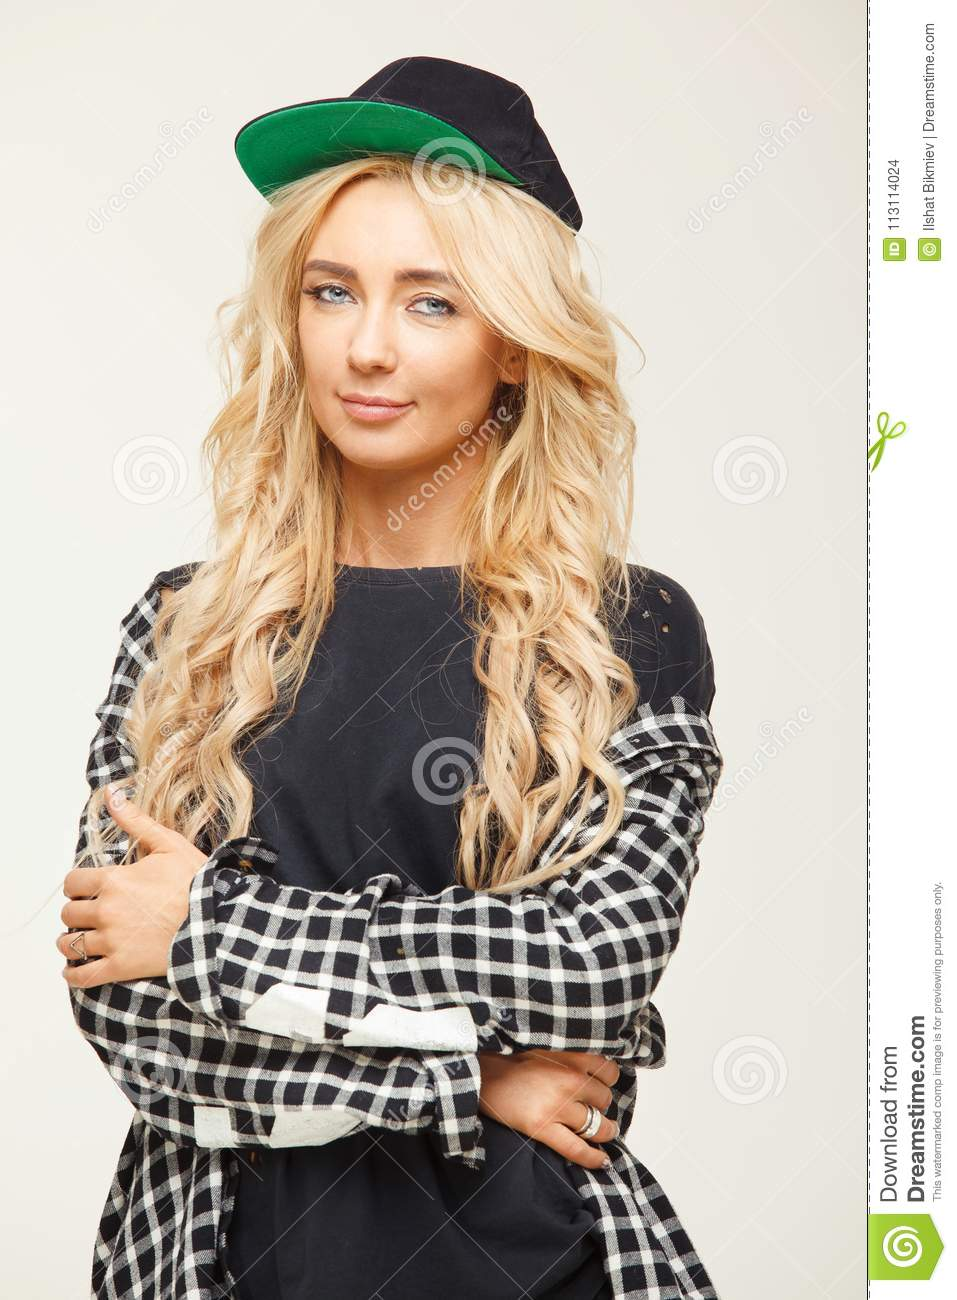 Cute young woman with voluminous blonde hair in baseball cap and shirt.  beautiful portrait of a stylish girl. 0486fd22d72